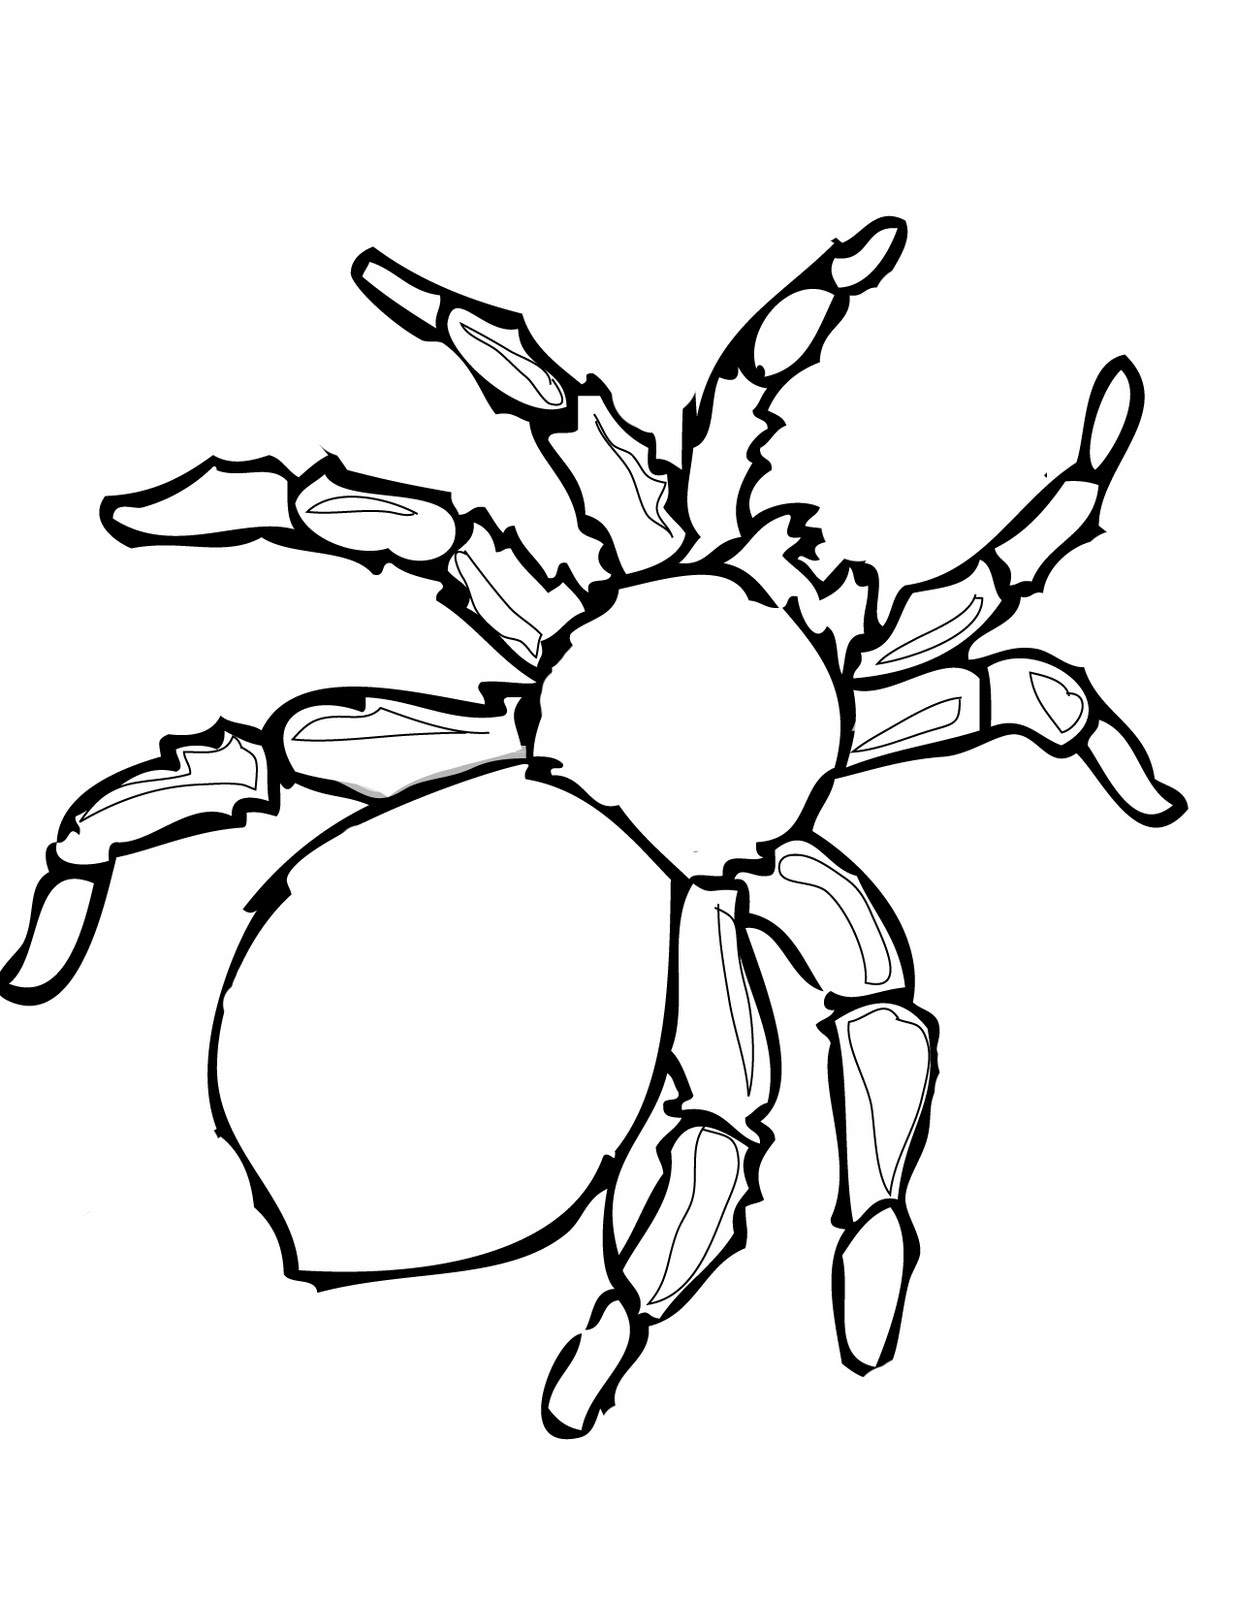 tarantula coloring pages free printable spider coloring pages for kids coloring tarantula pages